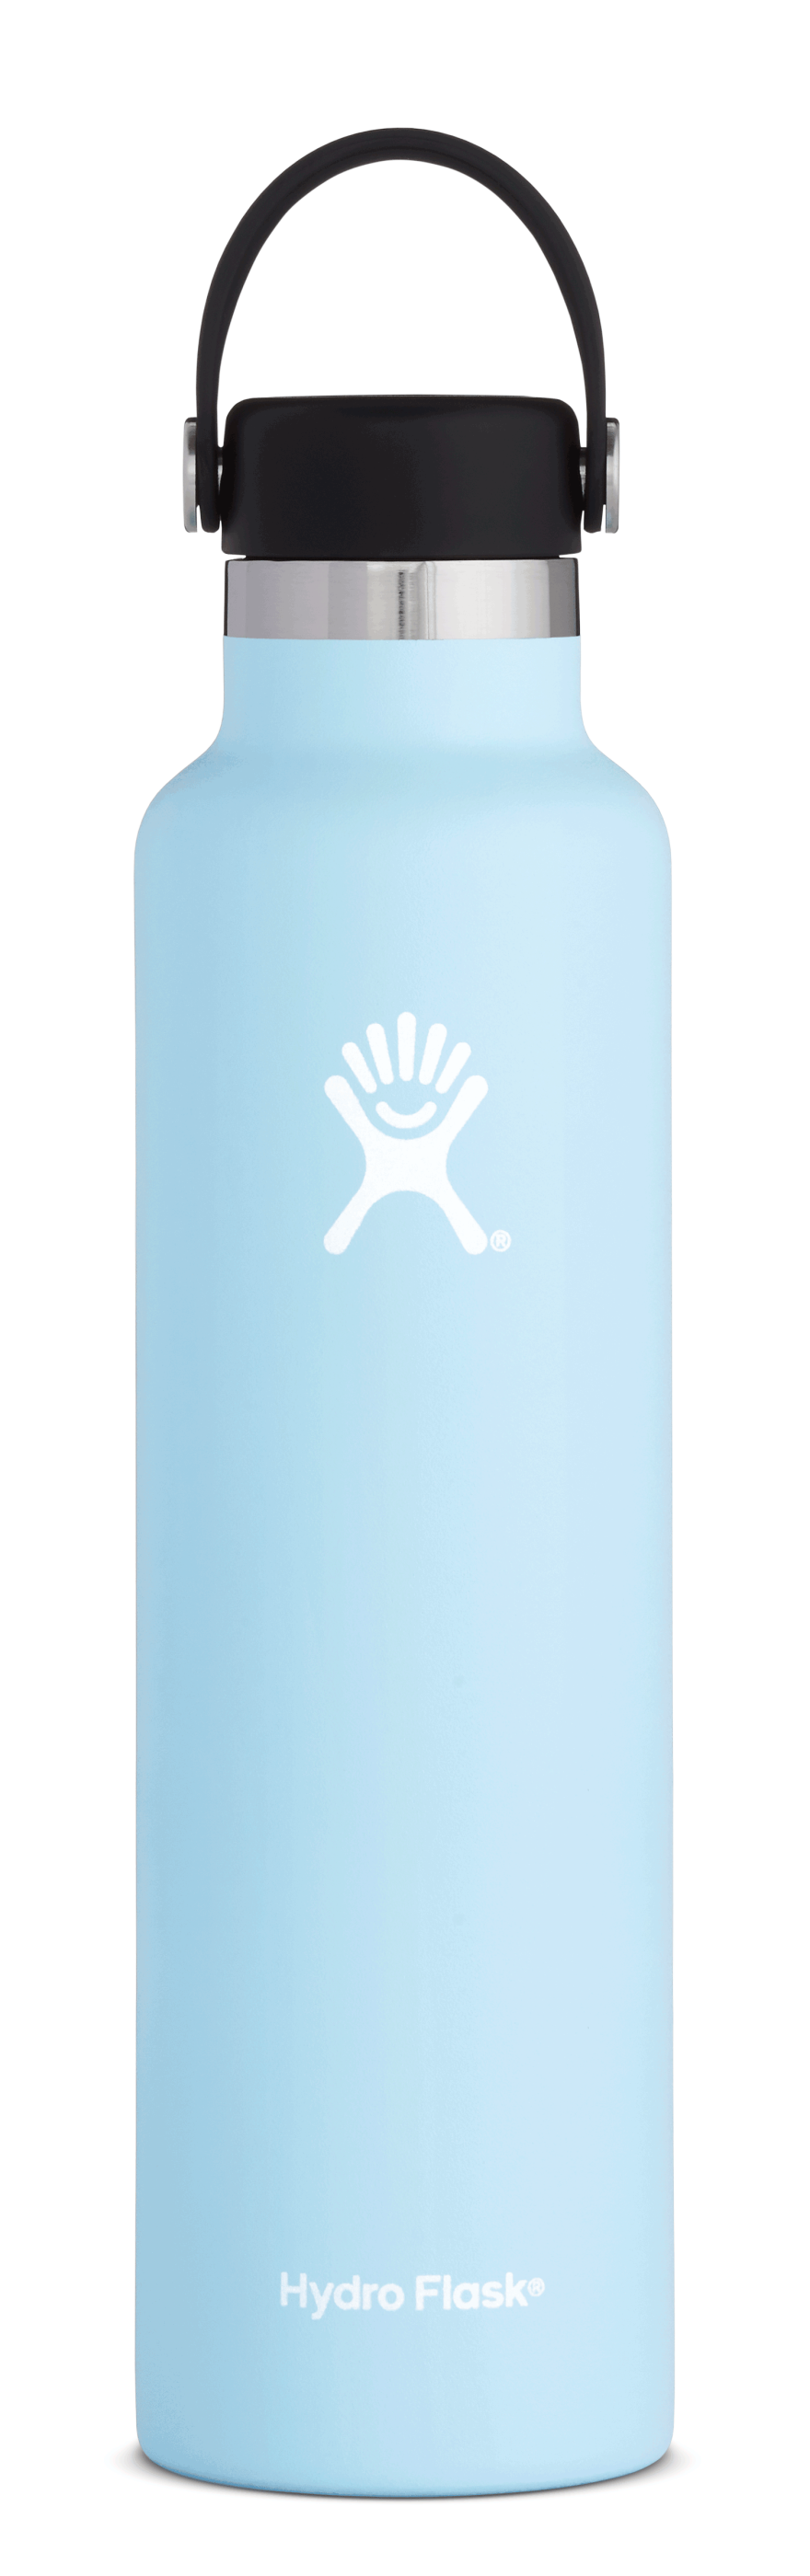 Hydro-Flask-24-oz-Standard-Mouth-Frost